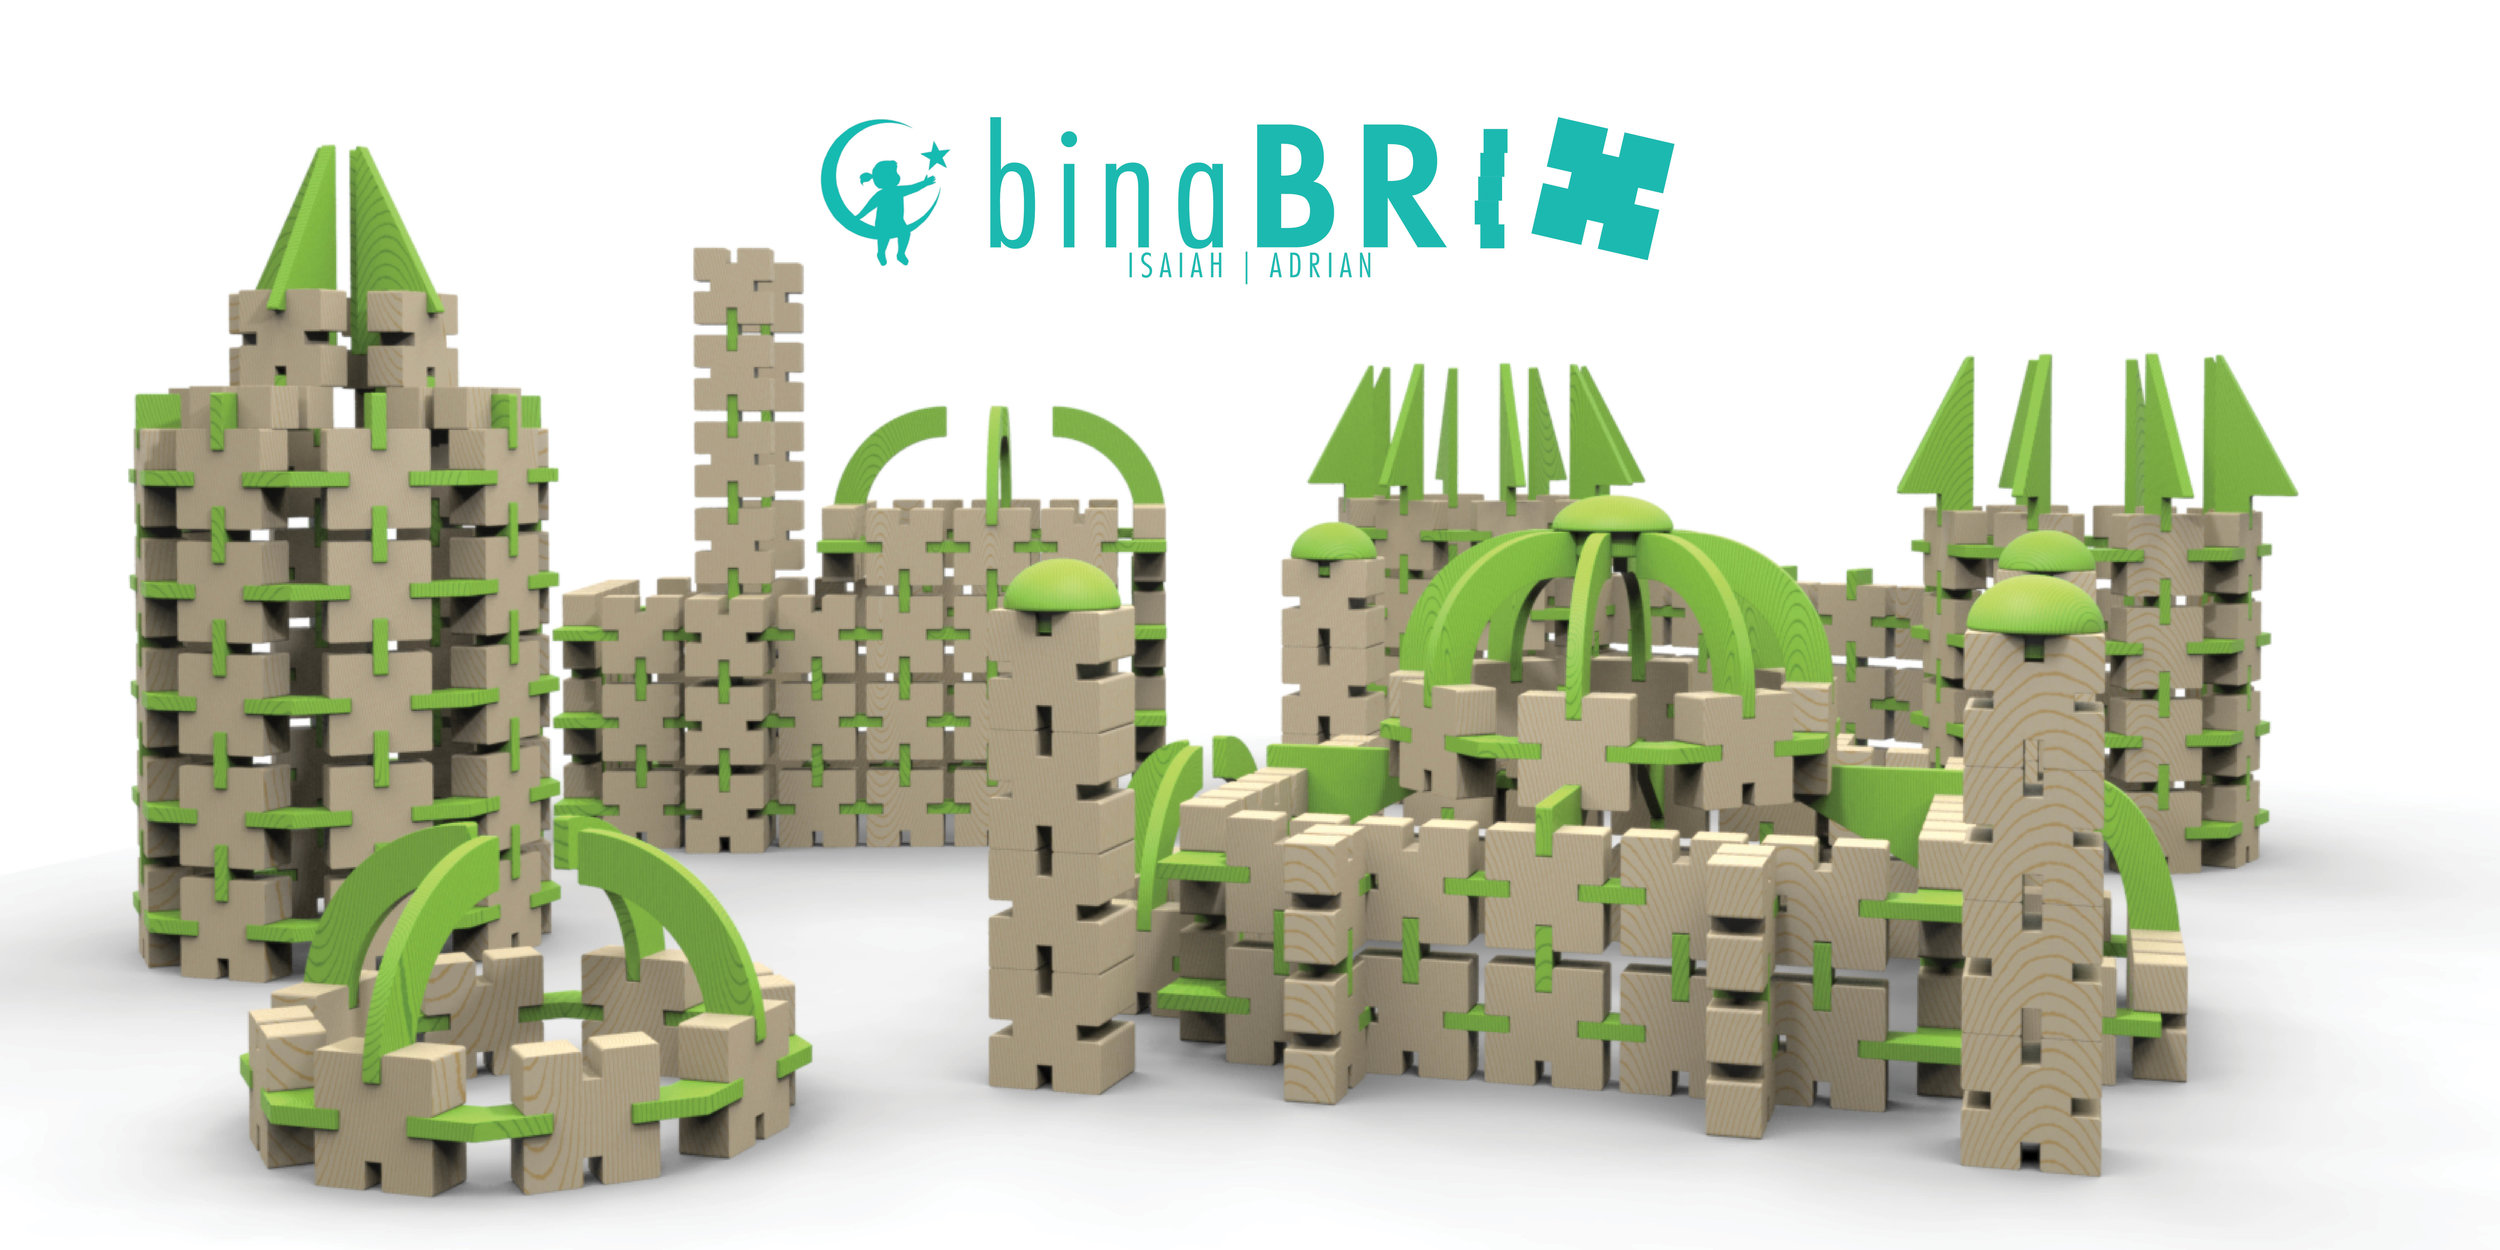 Bina Brix for BTSTeaching history through architecture - Bina Brix is a result of her Industrial Design students Isaah Jones, and Adrian Karaan's work during the Fall 2016 semester.Bina bricks are an educational tool that feature 4 slits where connector pieces and attachments can smoothly fit to connect more blocks or feature a prominent piece. These blocks are paired with a process book that guide the students towards their end goal of kids build Turkish architectures, they will also engage in creative play and learning.